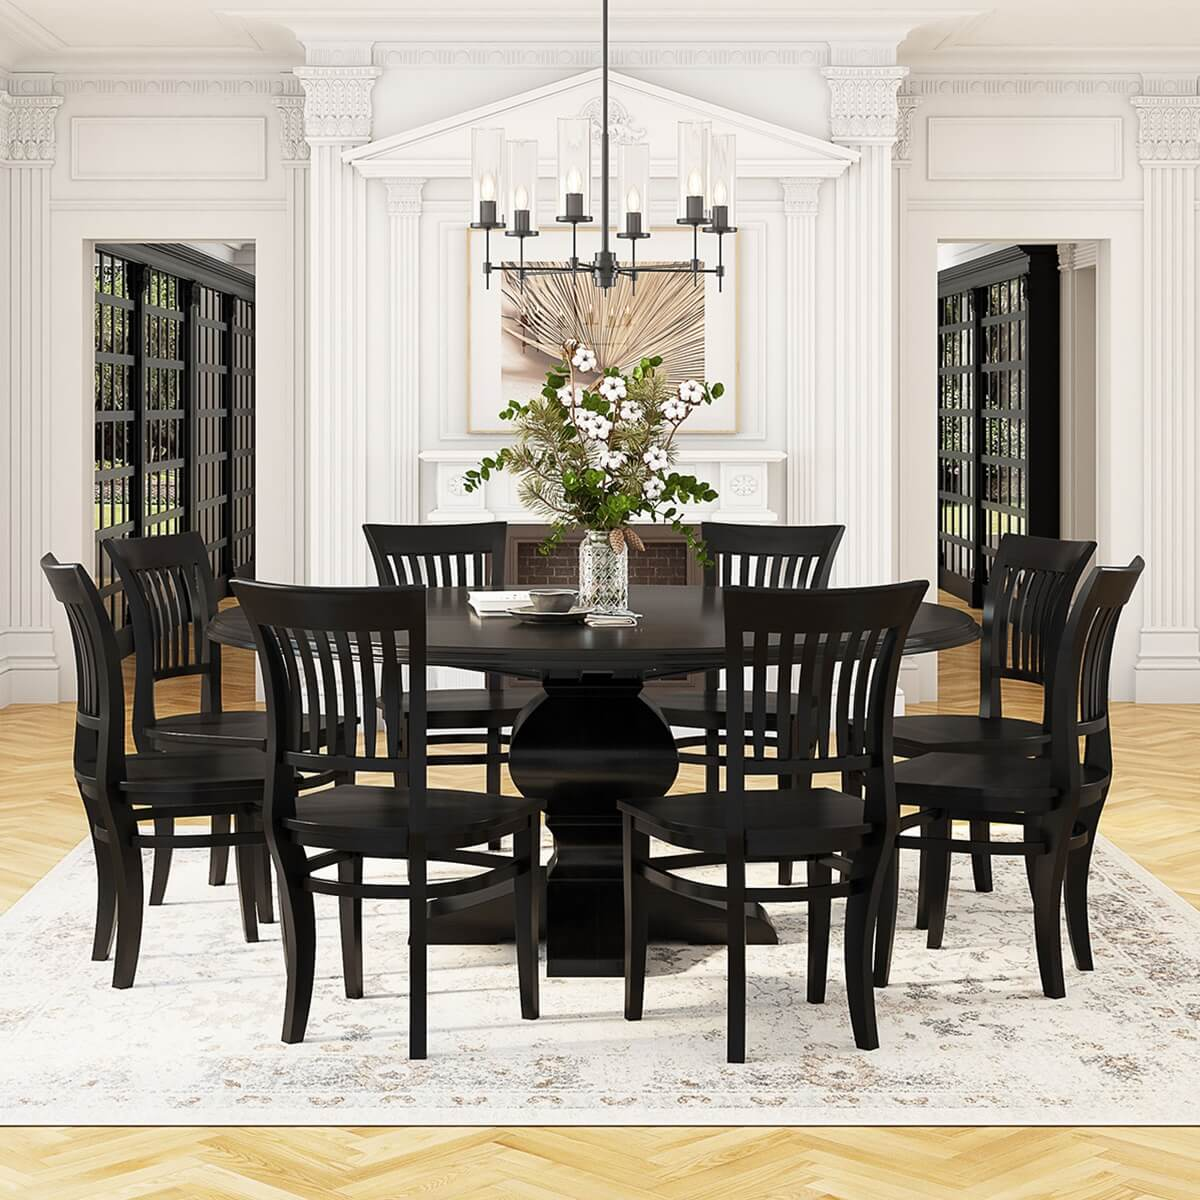 Sierra nevada large round rustic solid wood dining table for Solid wood dining room table and chairs